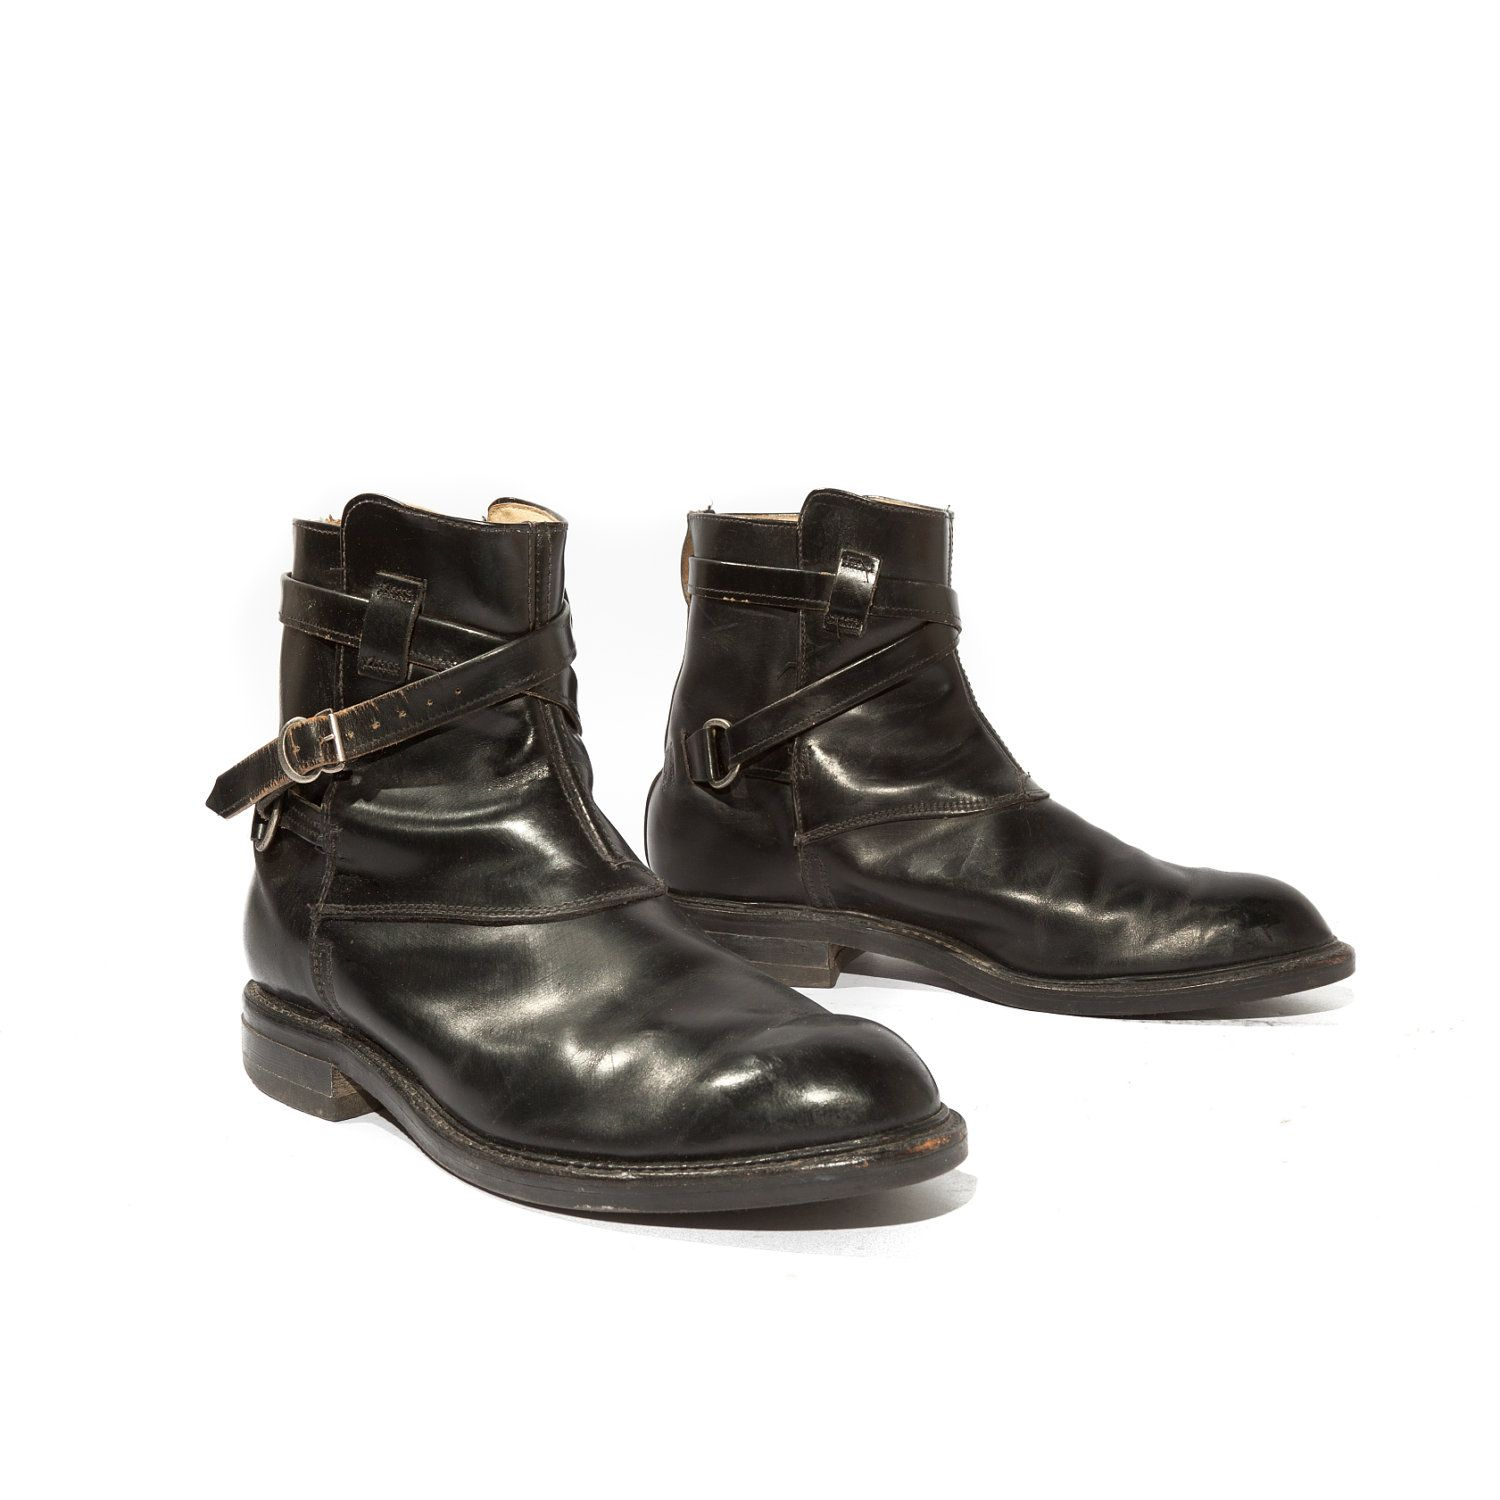 Badass boots! Vintage Men's Ankle Boots Wrap Around Strap and Buckle  Motorcycle Style for Size